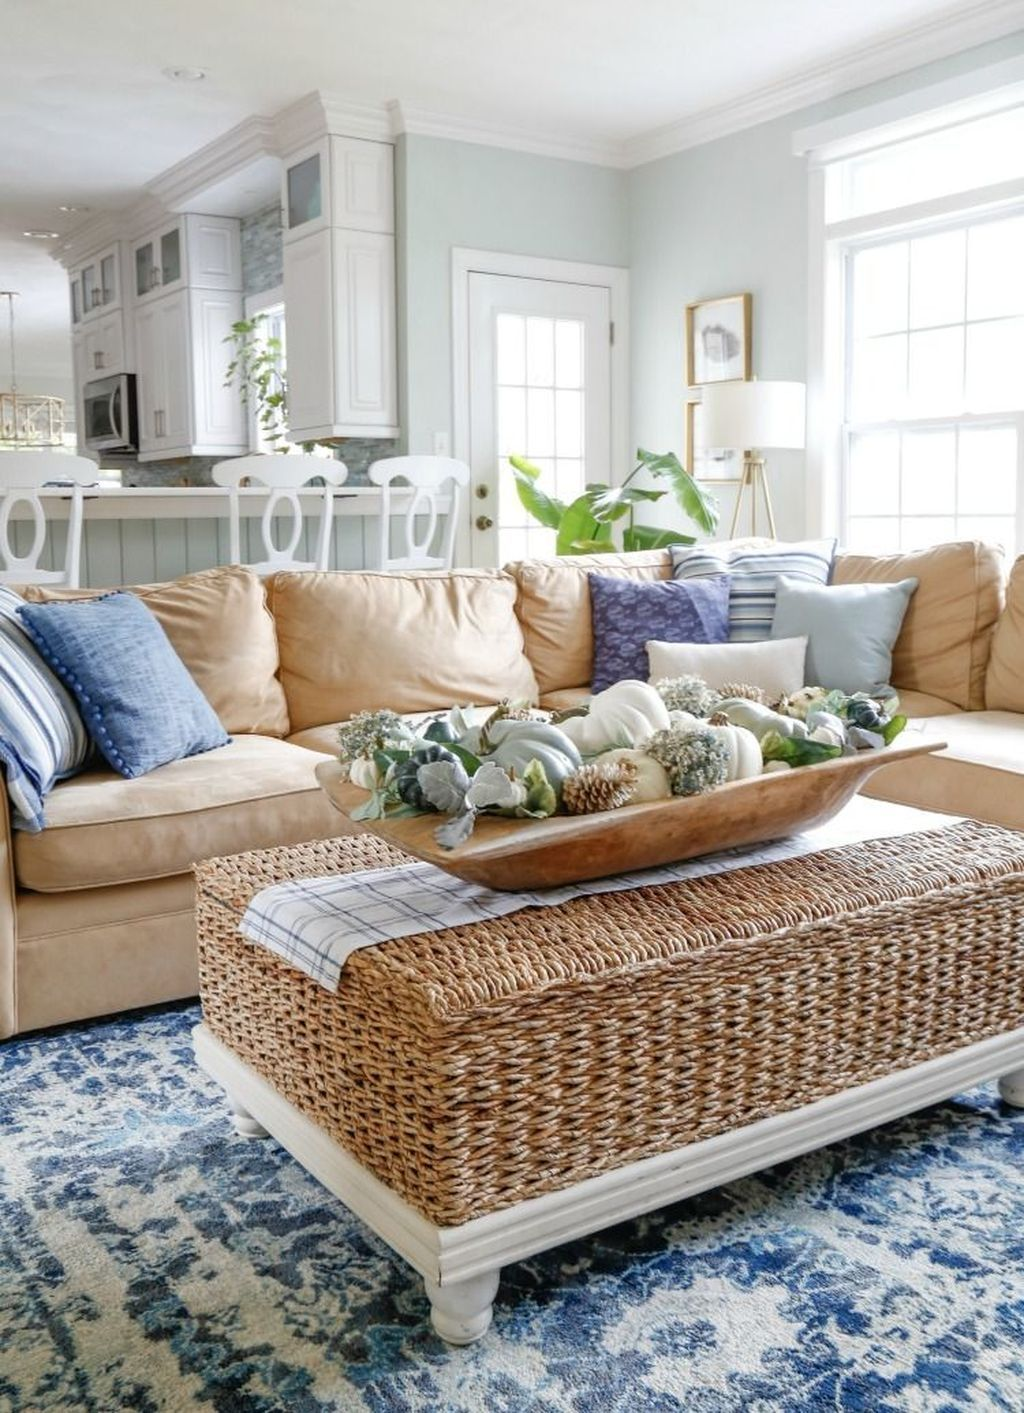 42 Wonderful Living Room Design Ideas For Your Home images